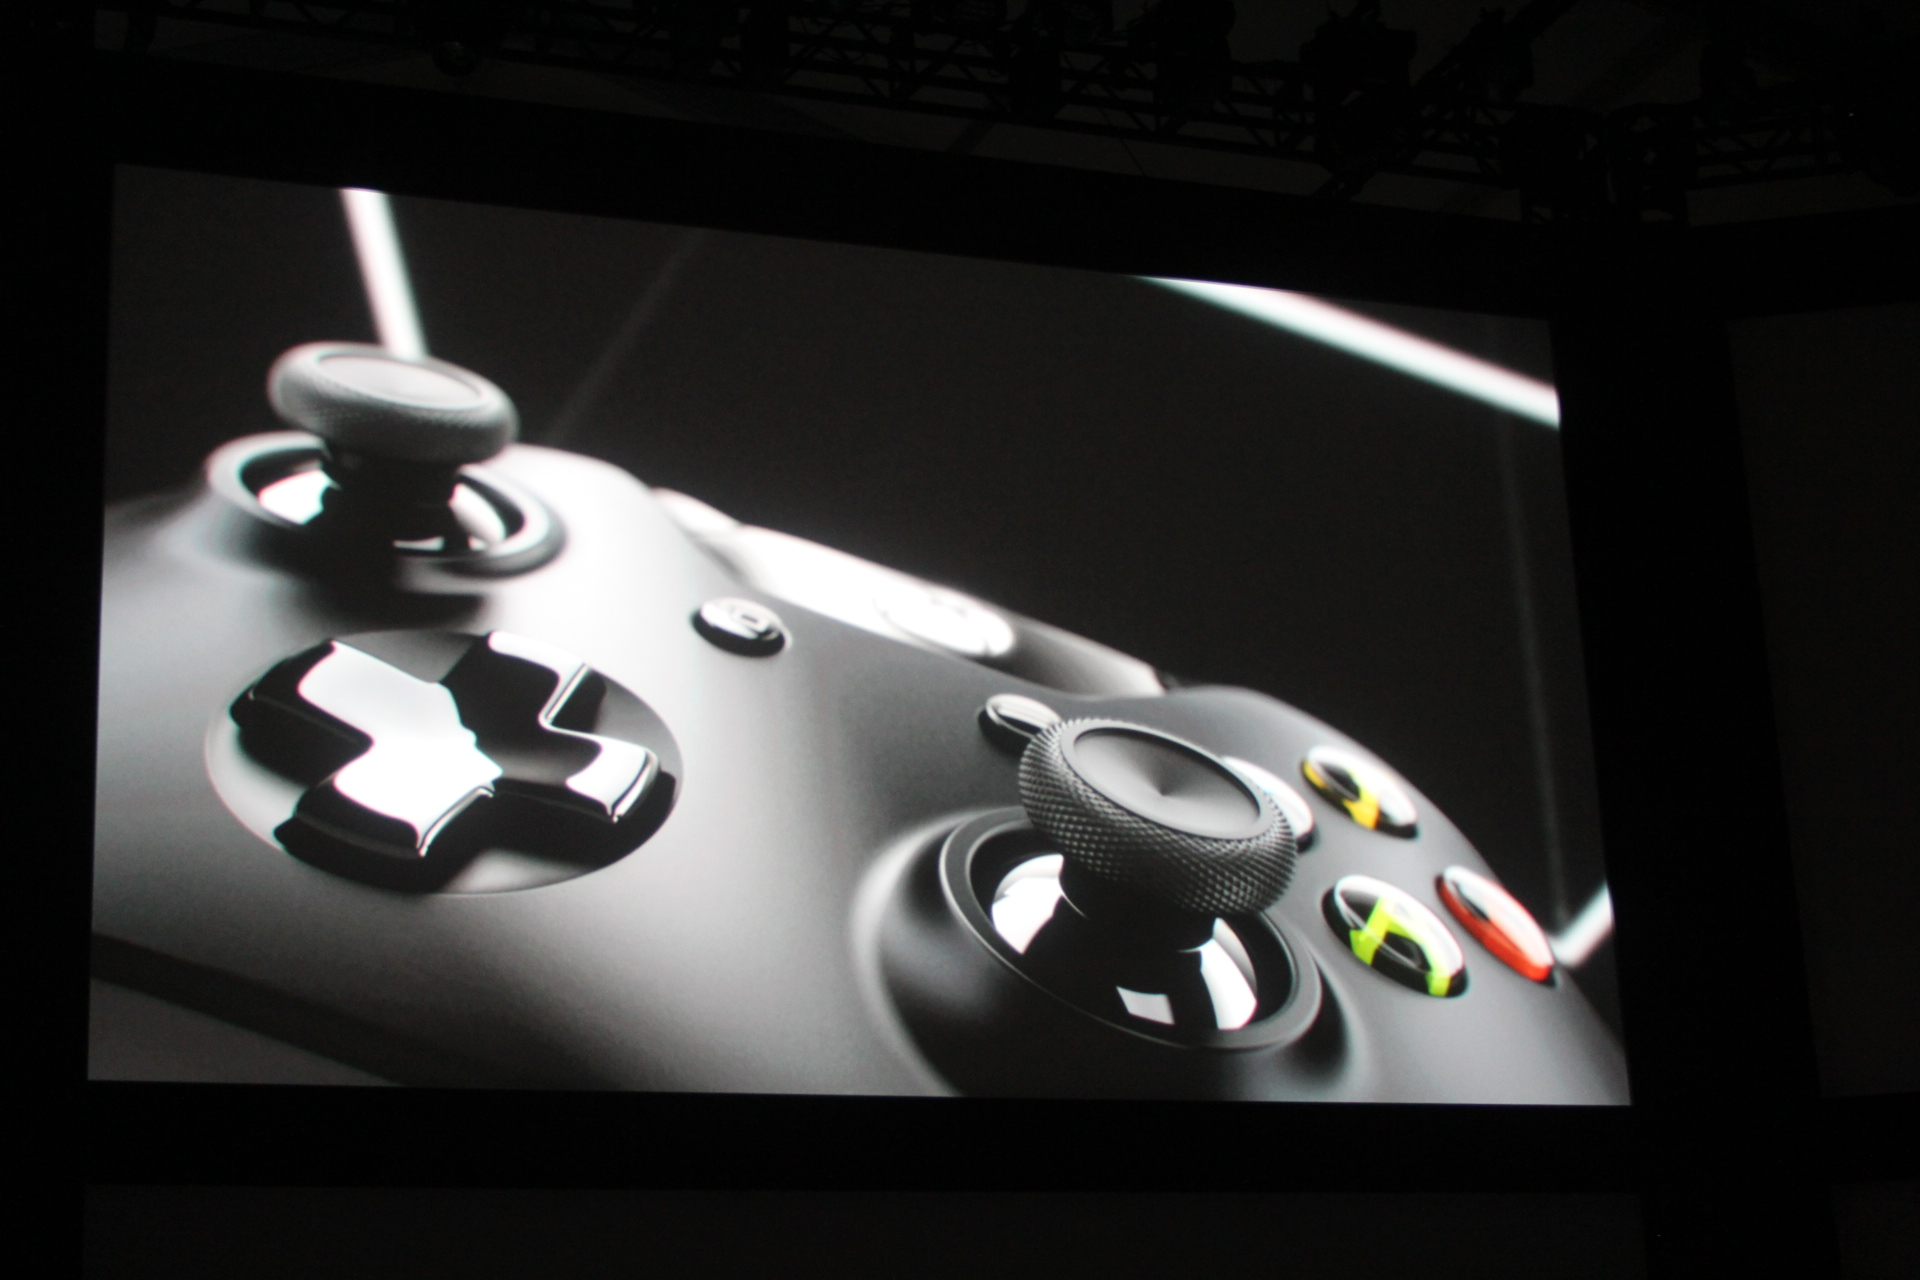 00151 Microsoft introduces new controller for Xbox One console with redesigned d pad